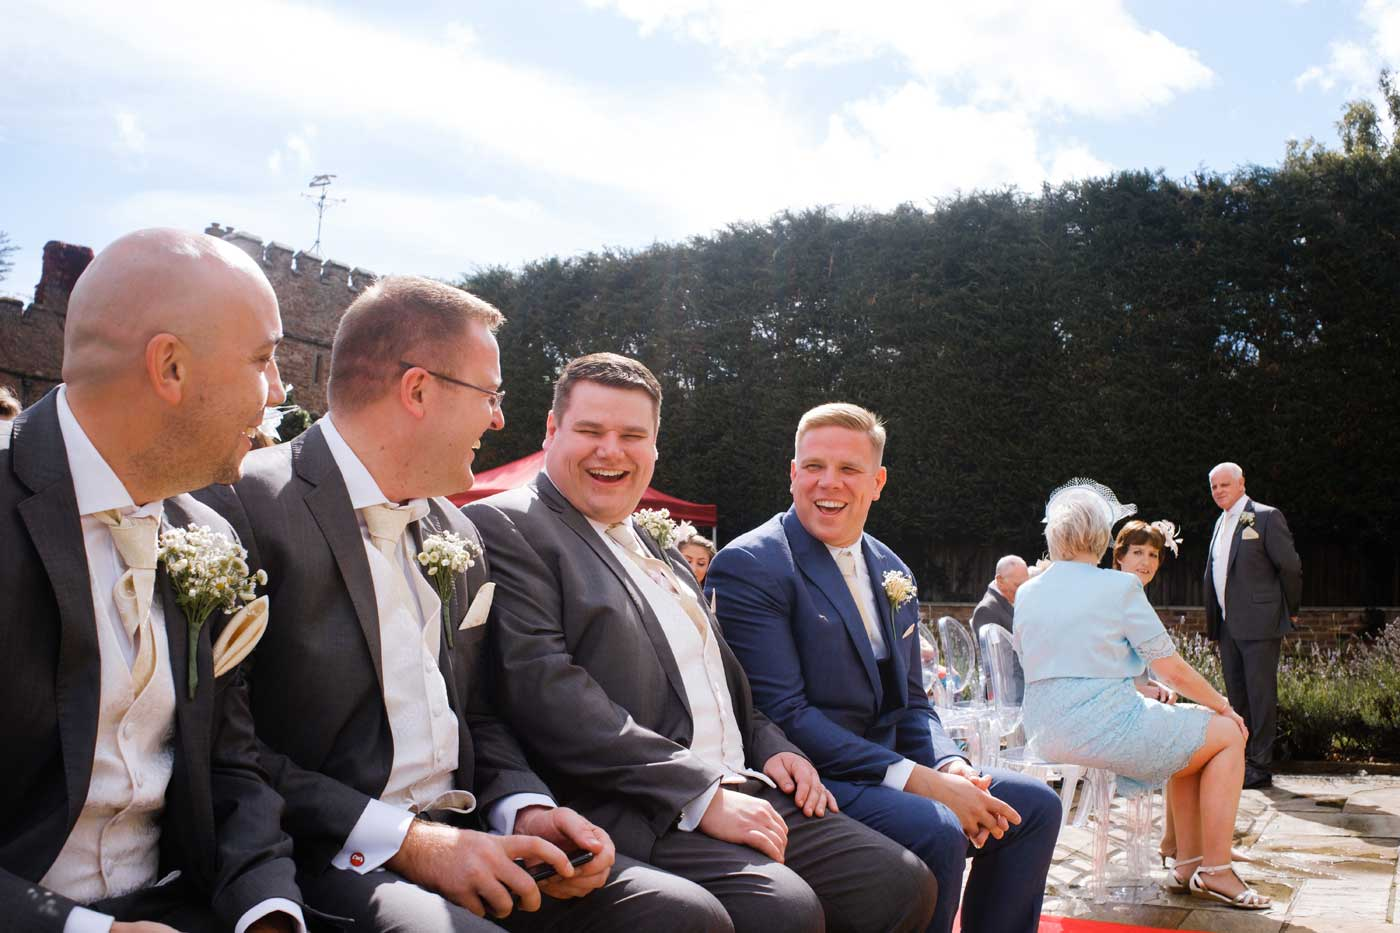 Groom with his men at Rowton Castle by documentary wedding photographer Clive Blair